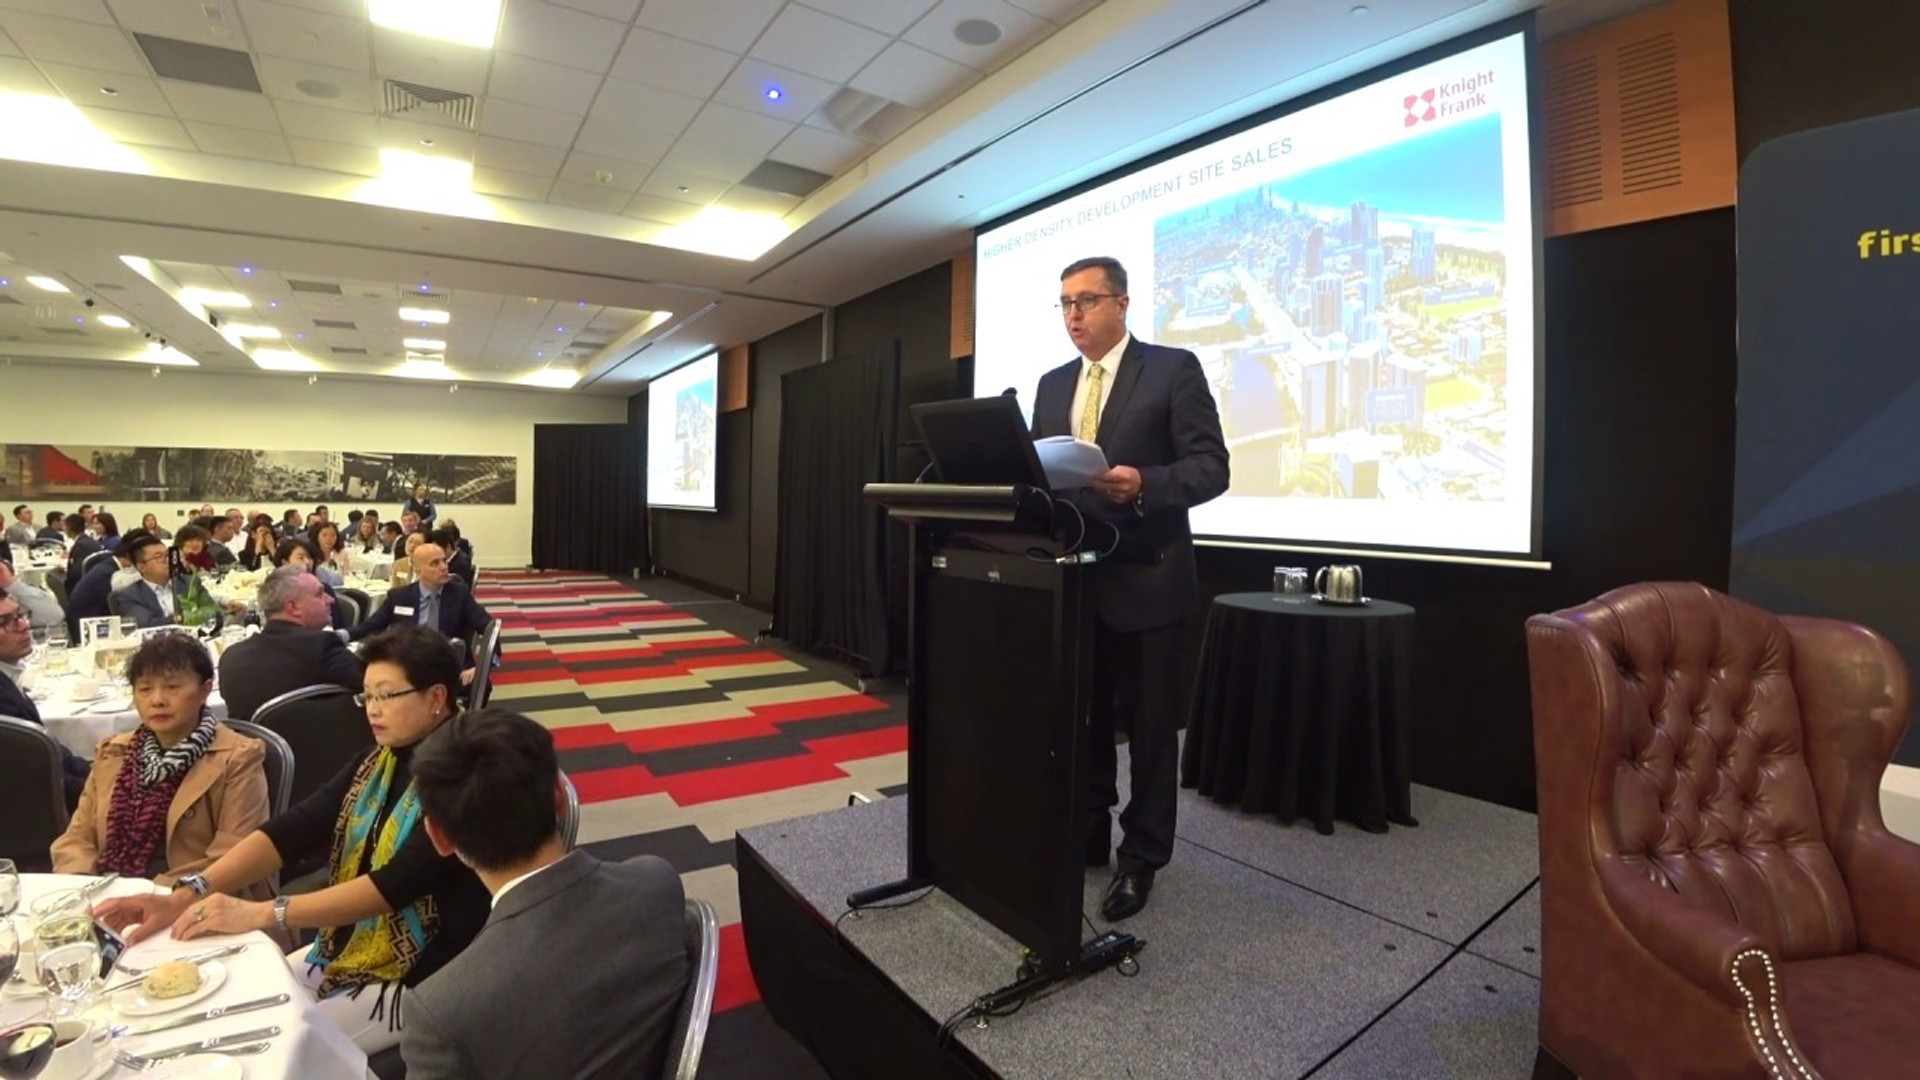 Special Panel Session with Brisbane Lord Mayor and Property Industry Leaders part 2